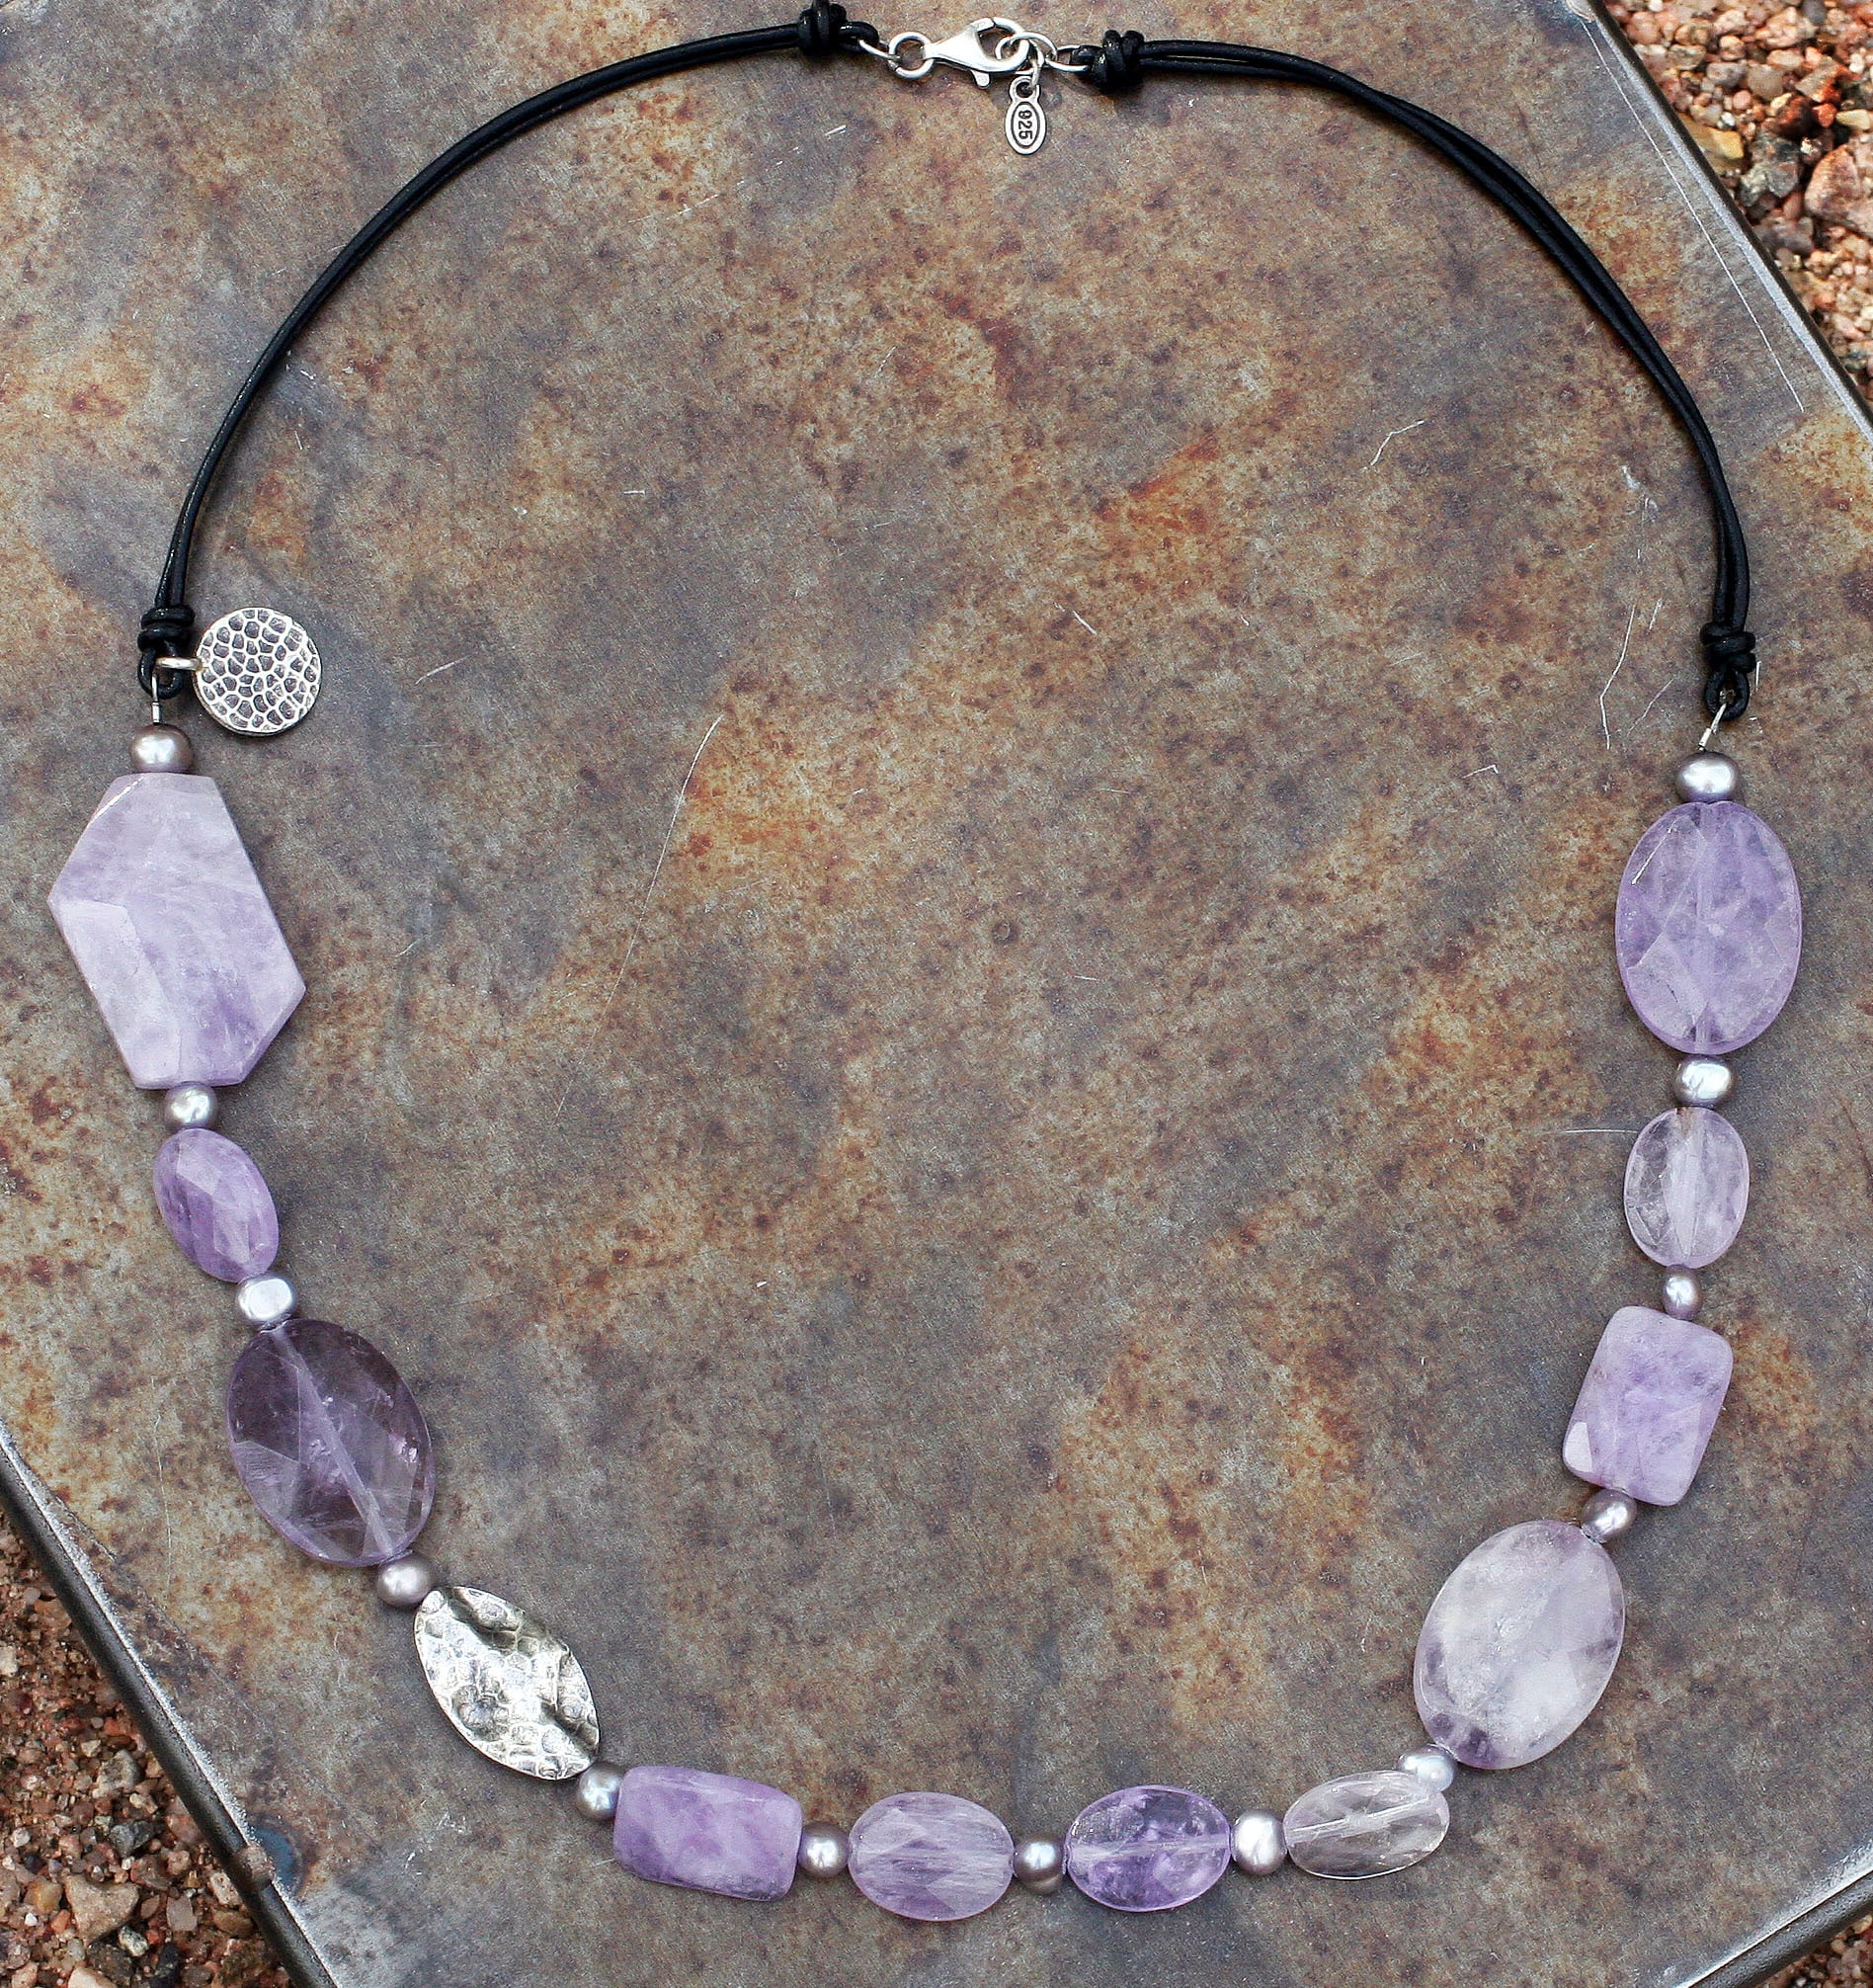 Peyote Bird Designs Silver Amethyst and Pearl Leather Necklace (5.3-6.3 mm)(China)